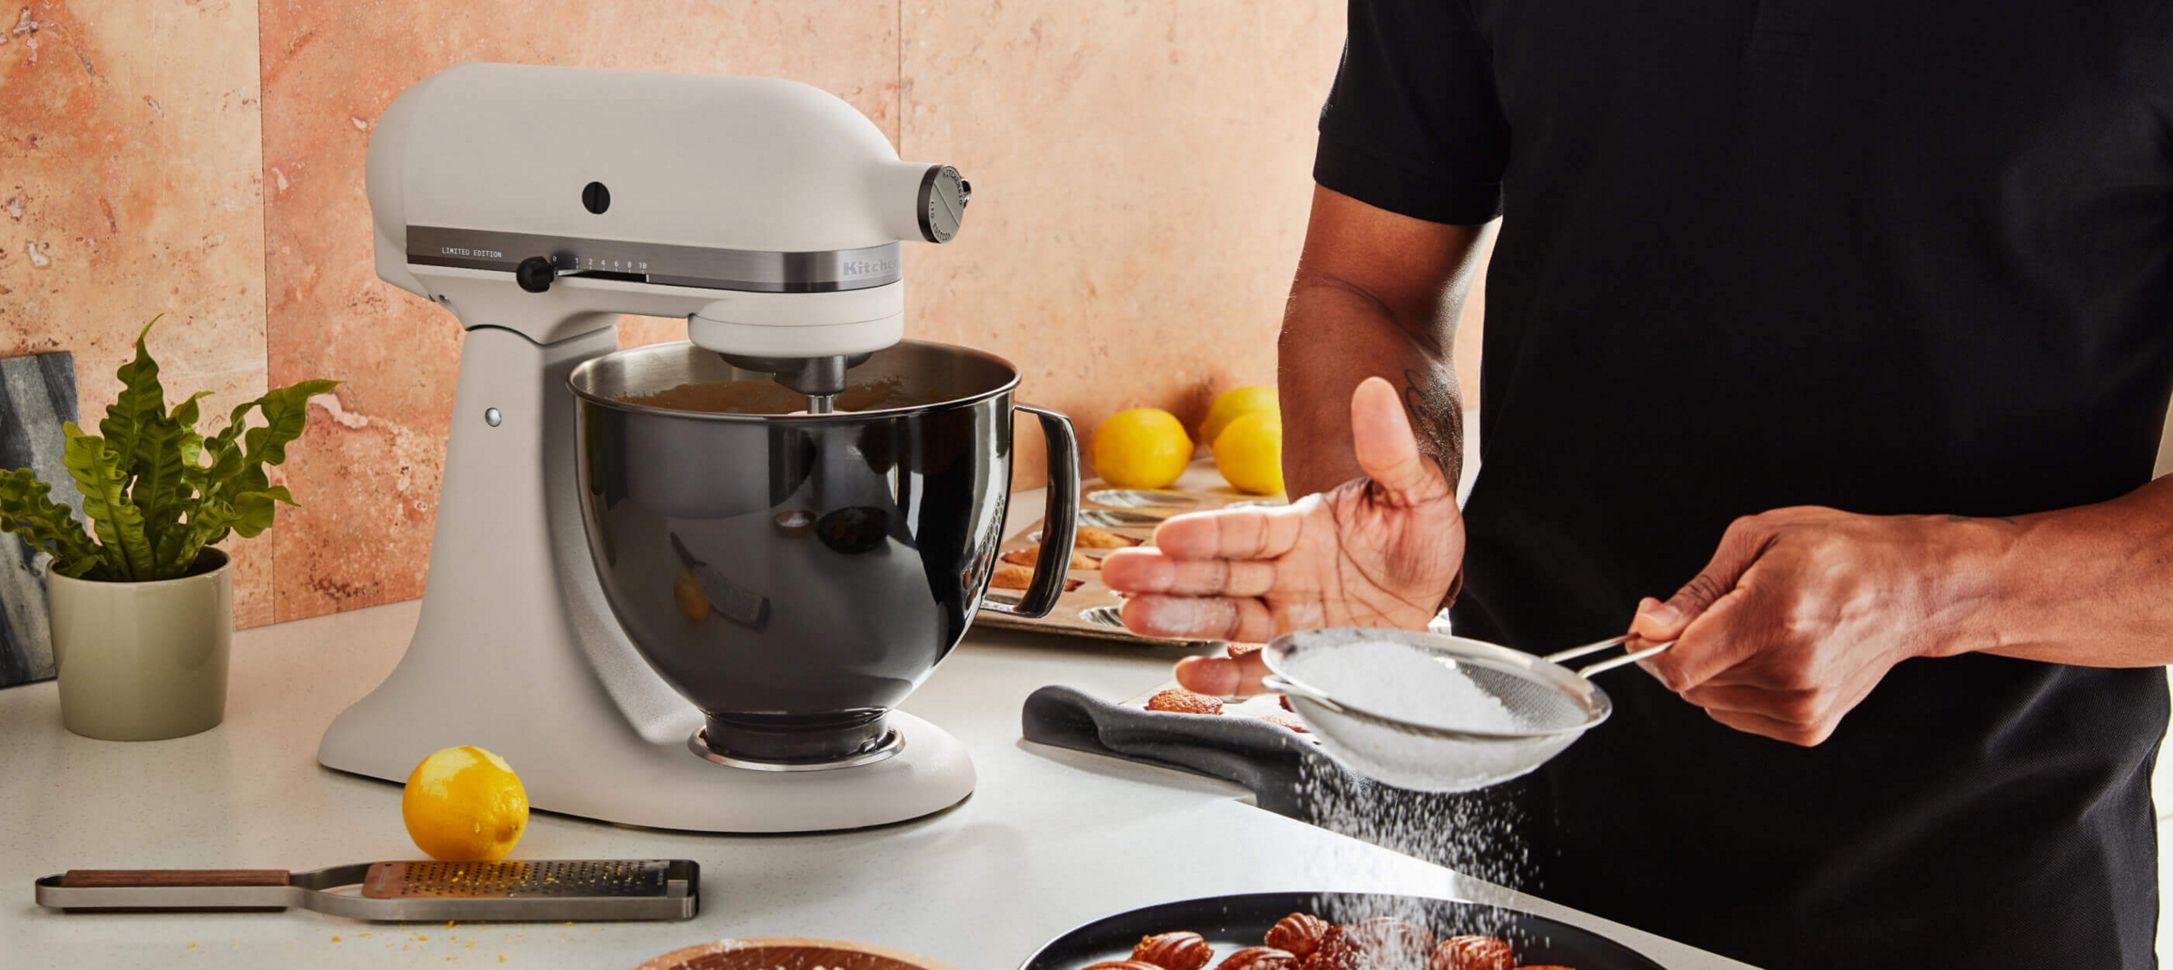 A Limited Edition Stand Mixer with a Stainless Steel Bowl.